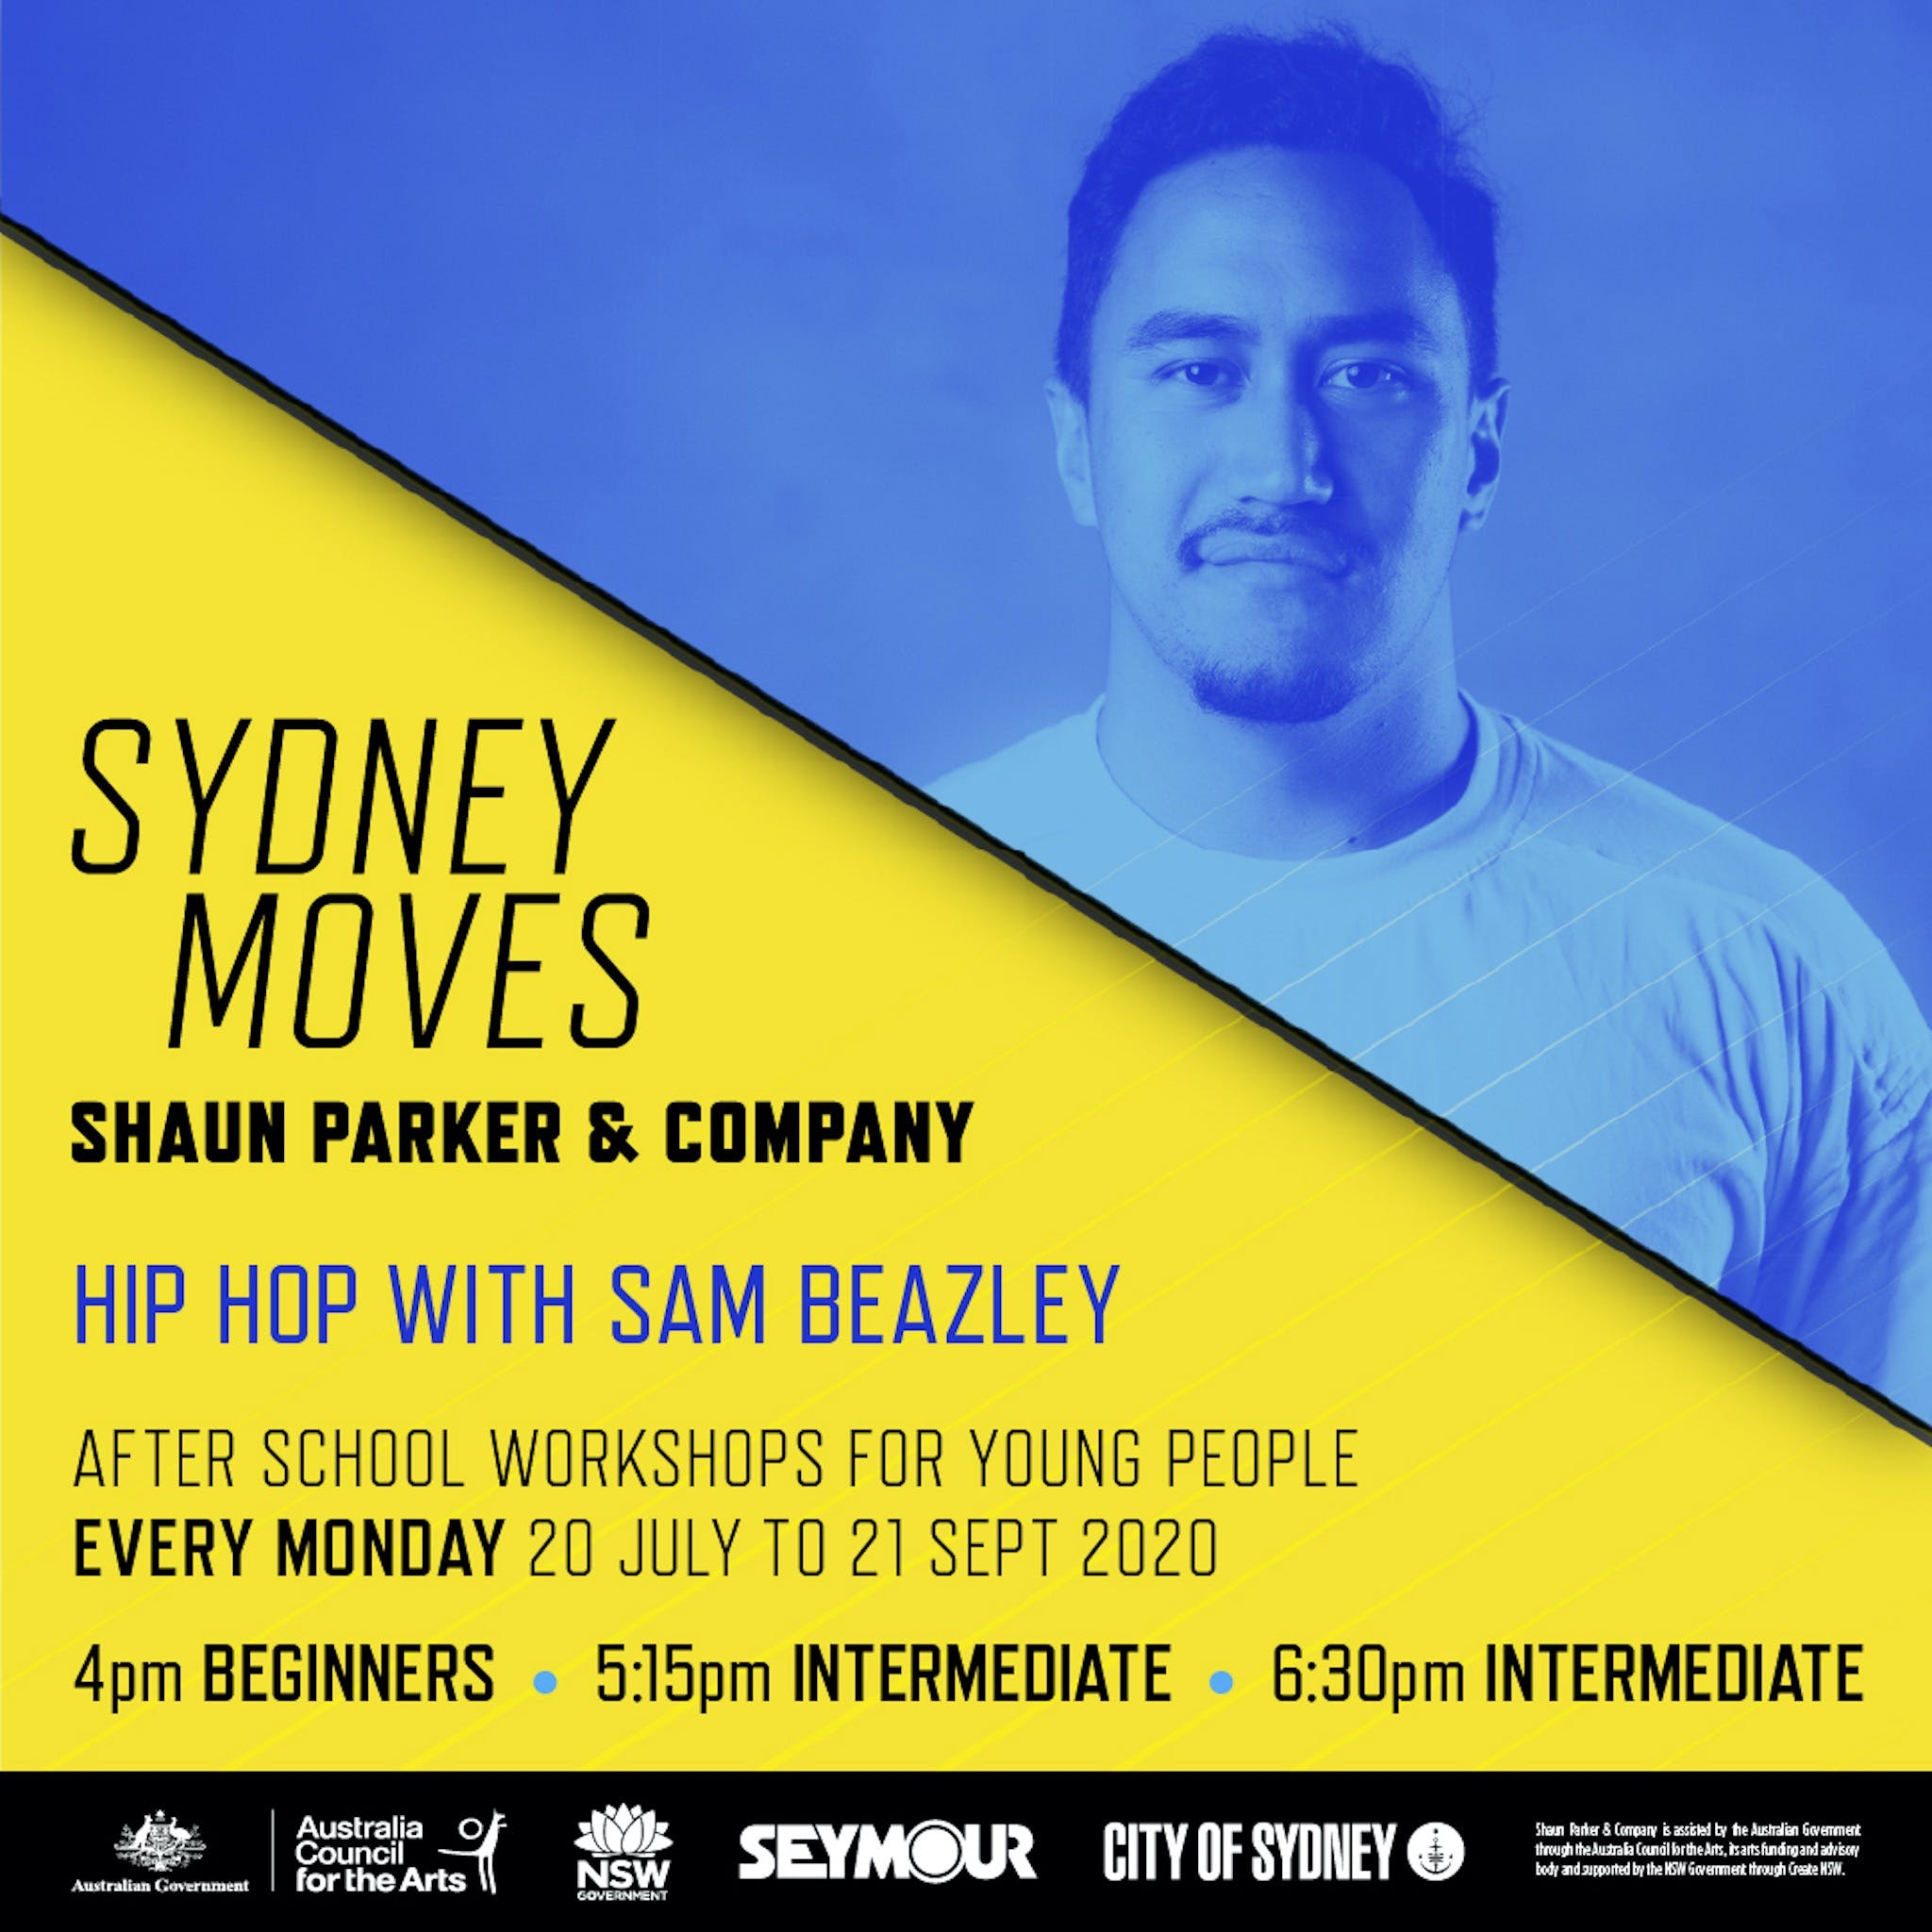 Sydney Moves - All Ages Intermediate Hip Hop with Sam Beazley - Victoria Tourism